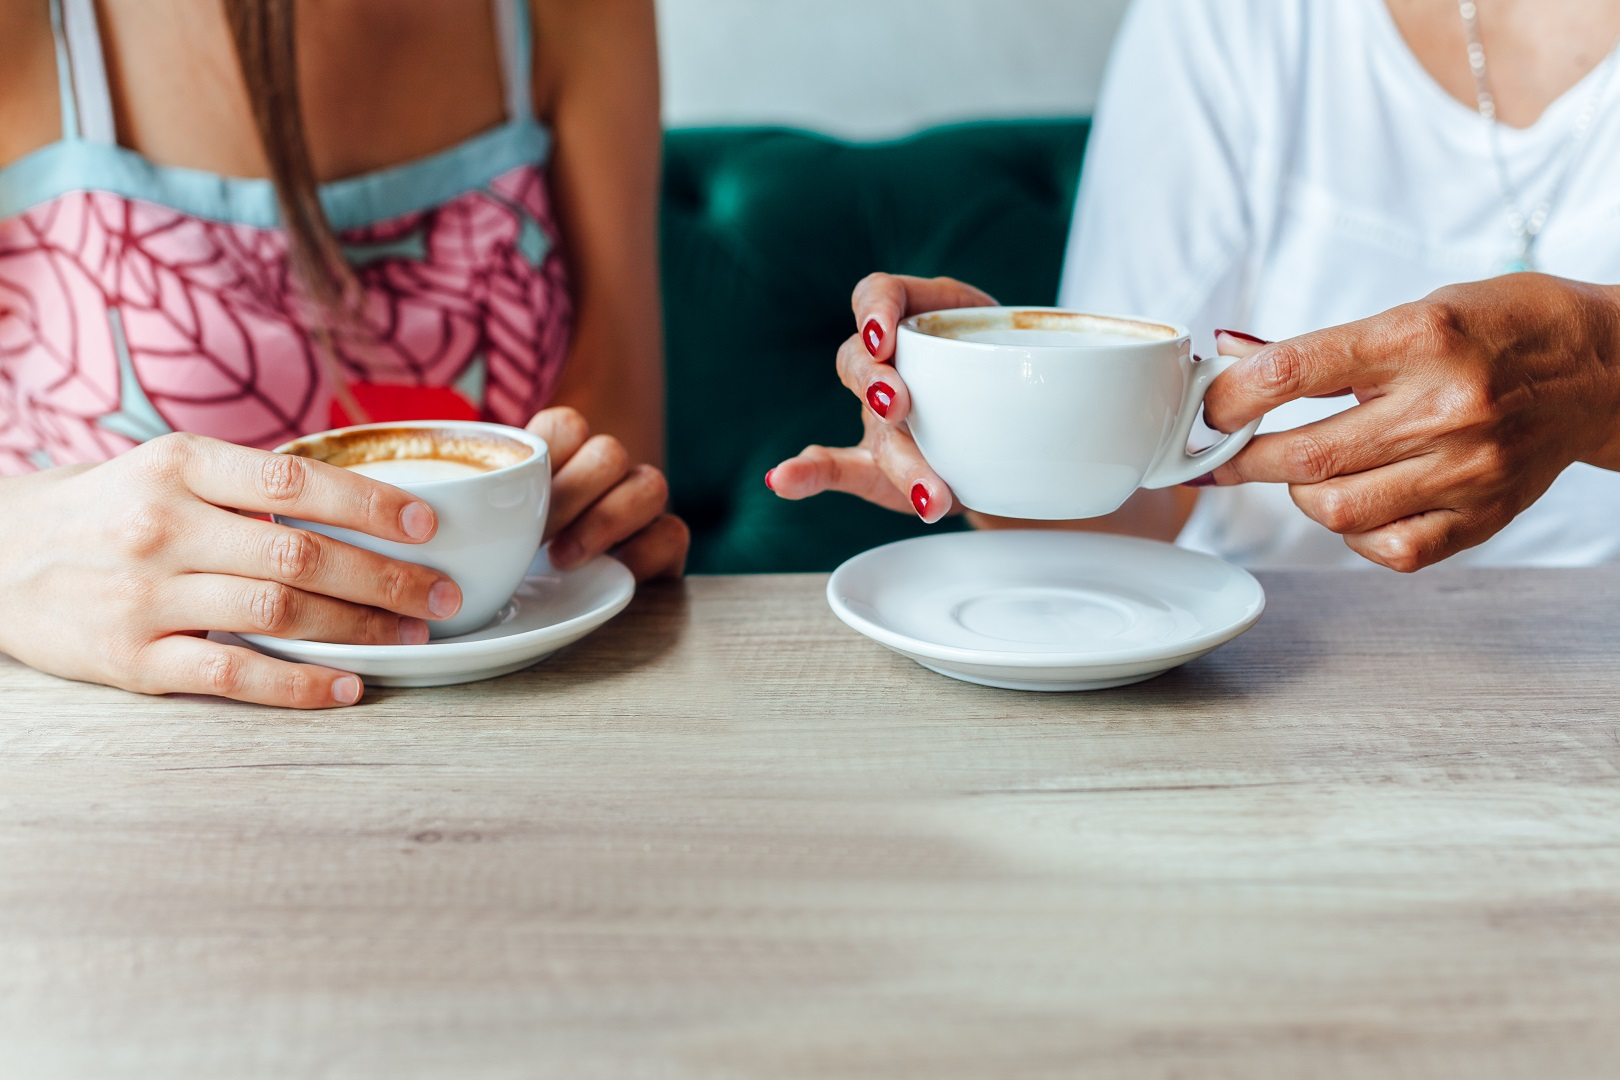 Mother Daughter Hands Holding White Mugs Drinking Coffee